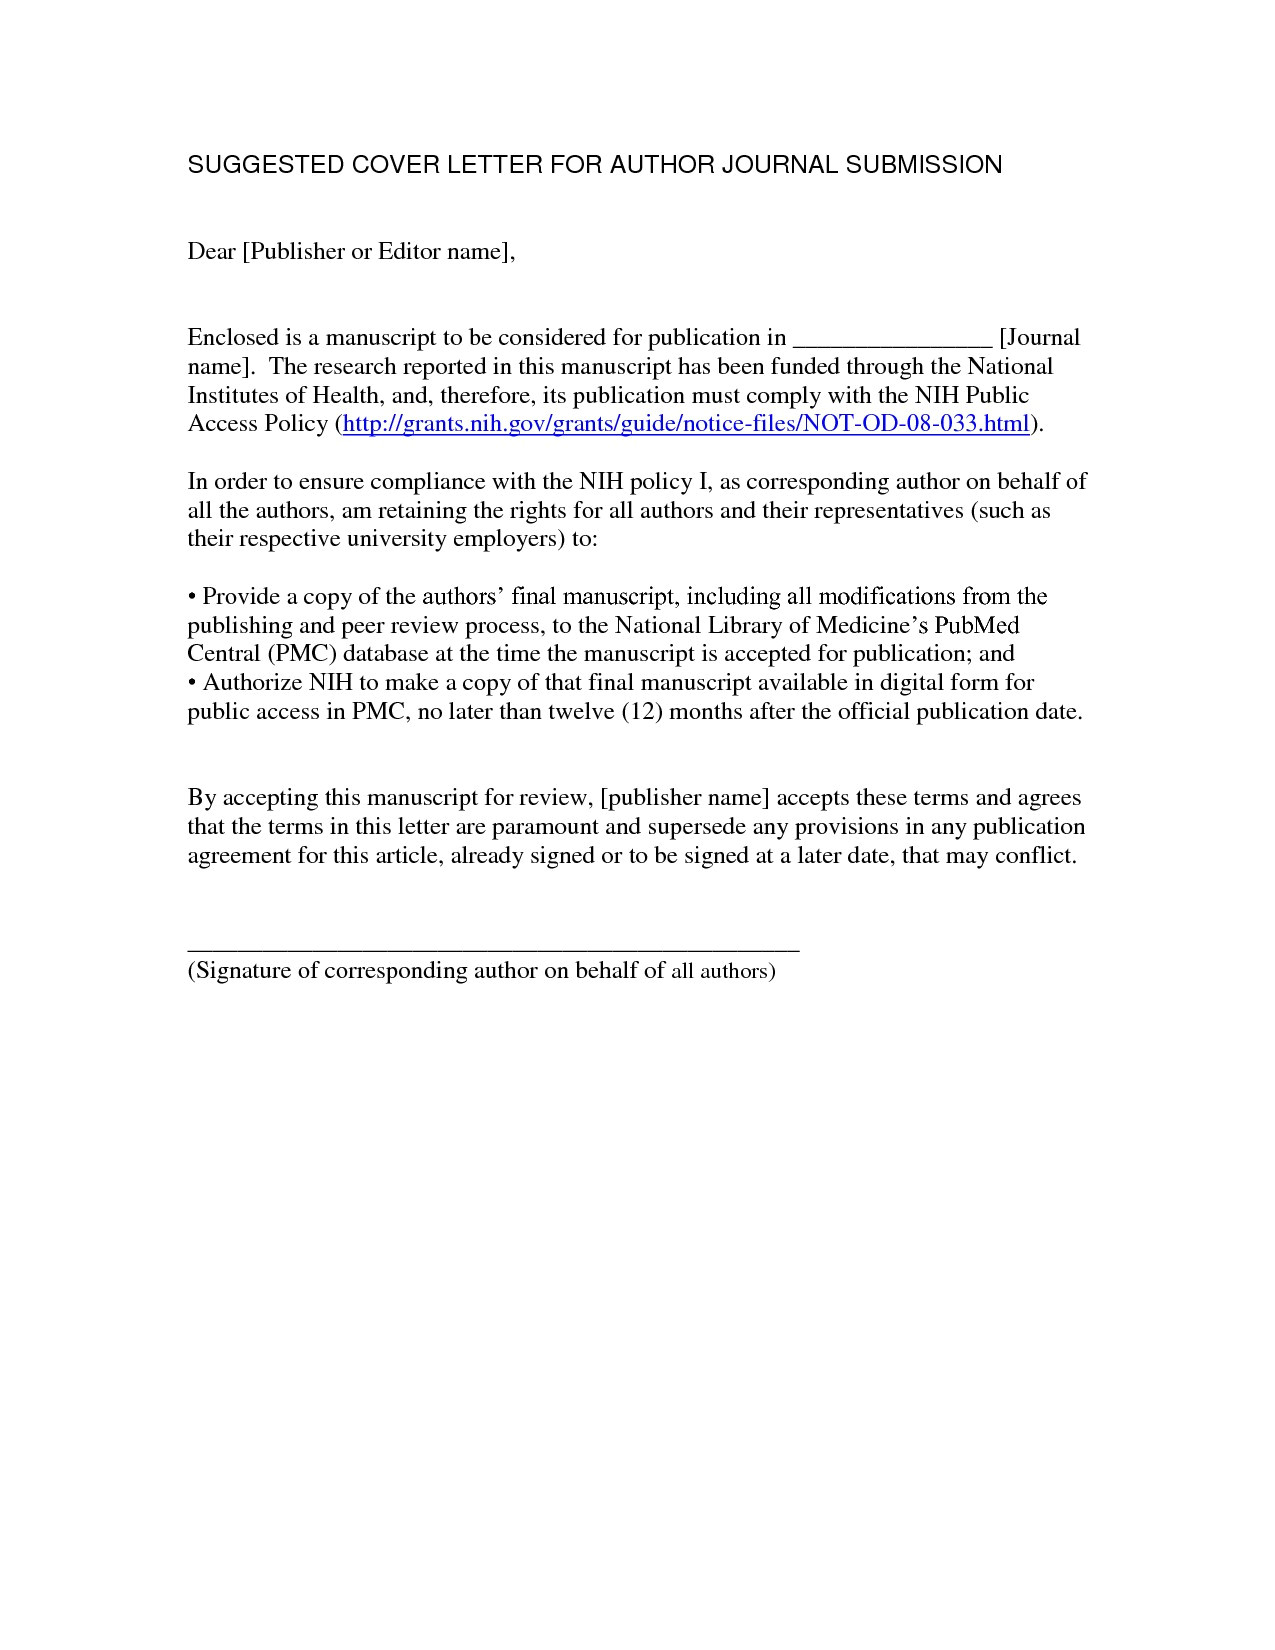 Cover Letter for Case Report Cover Letter for Journal Submission Example Cover Letter